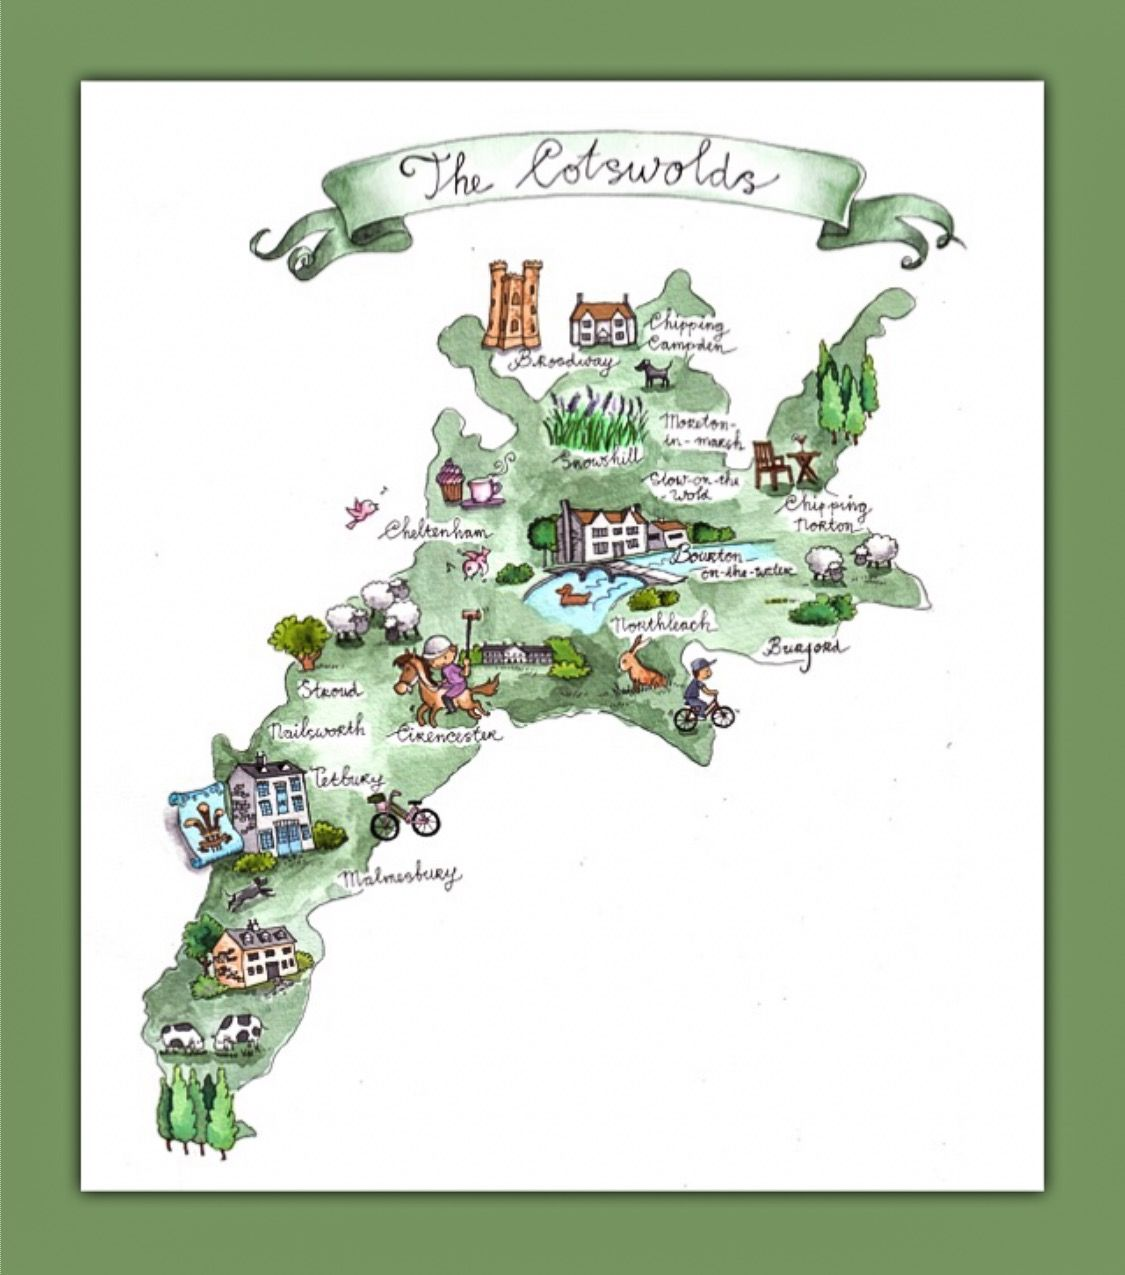 Cotswolds Map From Pinterest 4